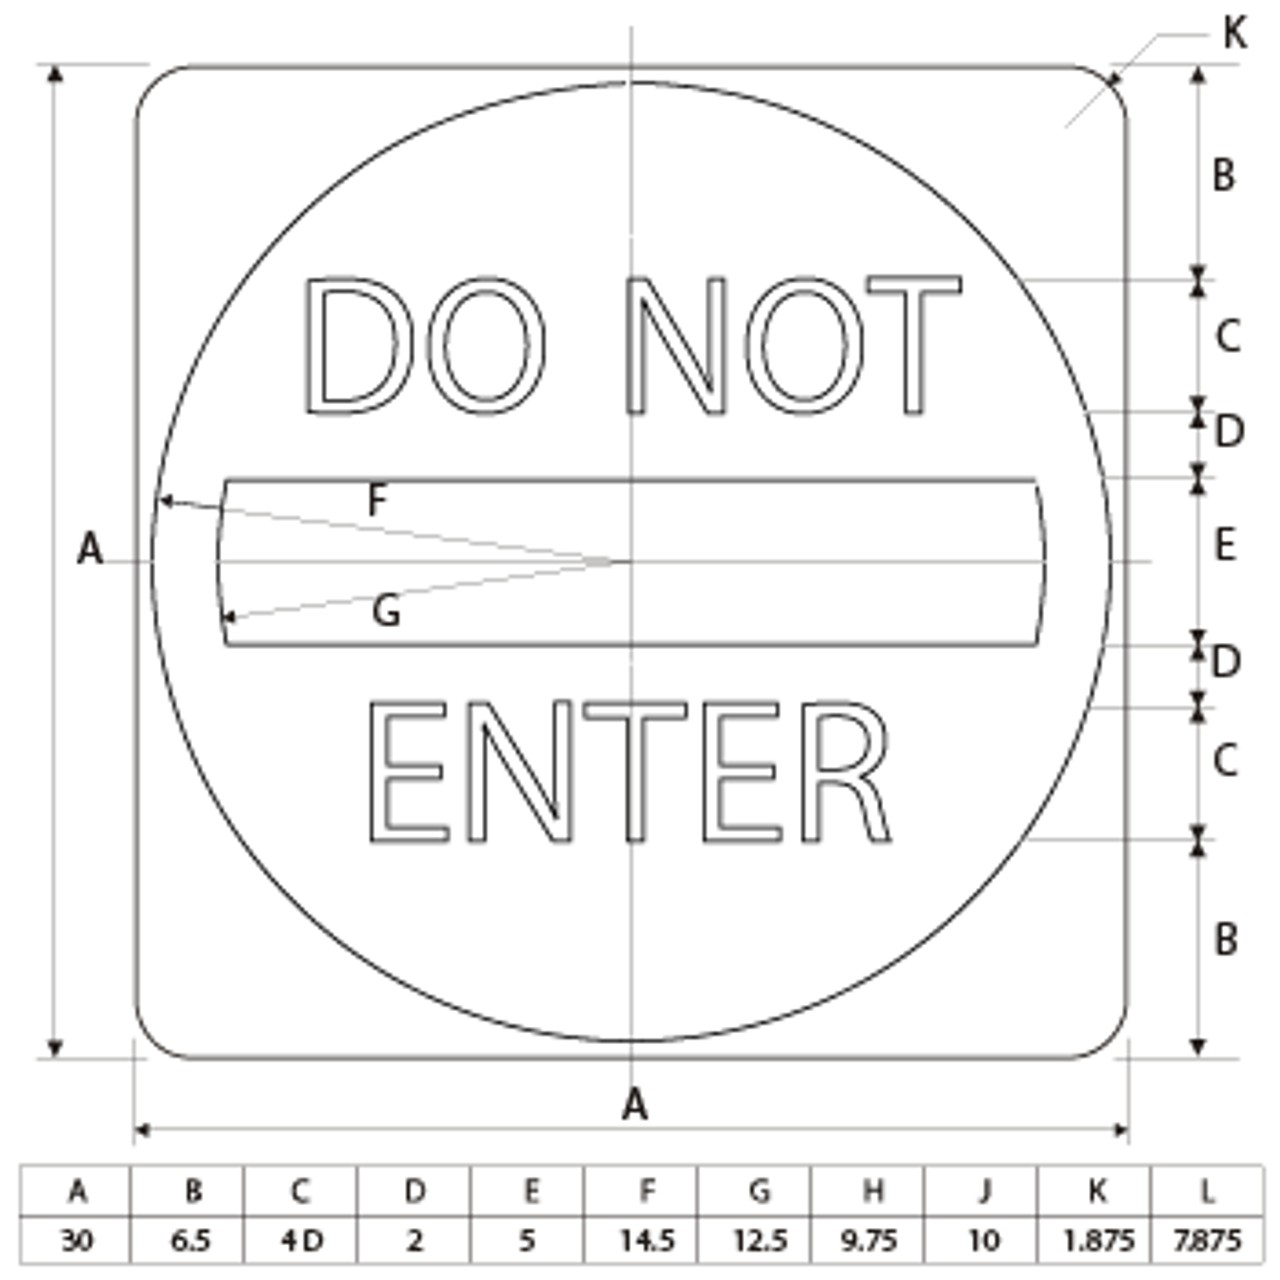 DO NOT ENTER ROAD SIGN dimensions